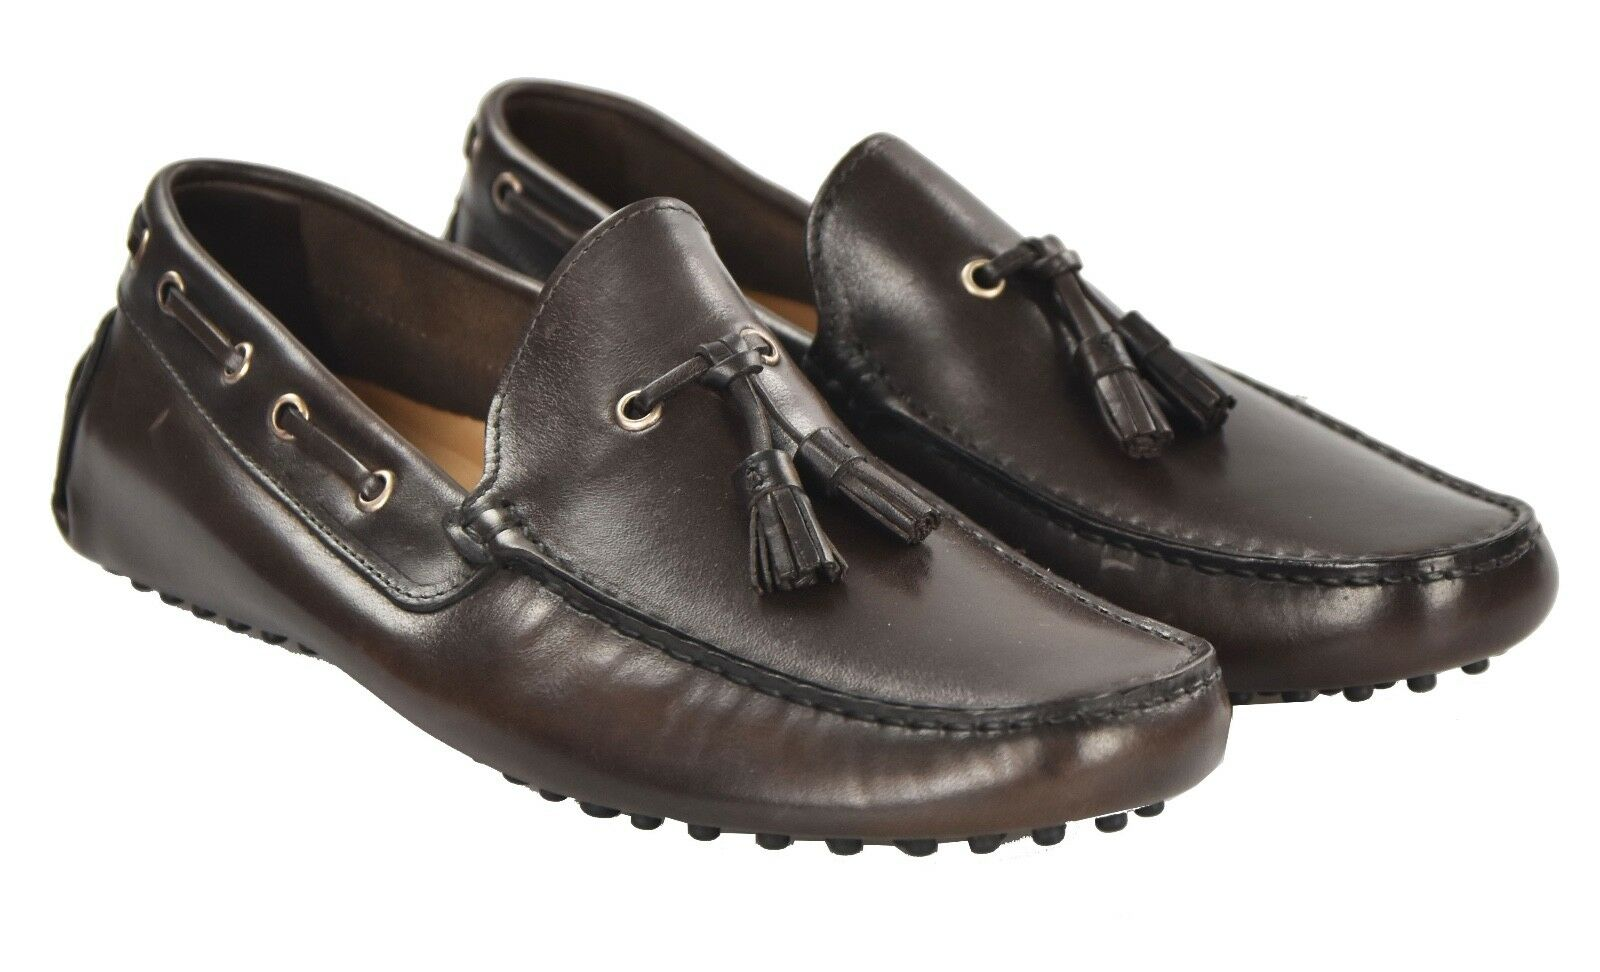 NEW KITON NAPOLI LOAFERS SHOES 100% LEATHER SIZE 11.5 US 44.5 EU 19O27